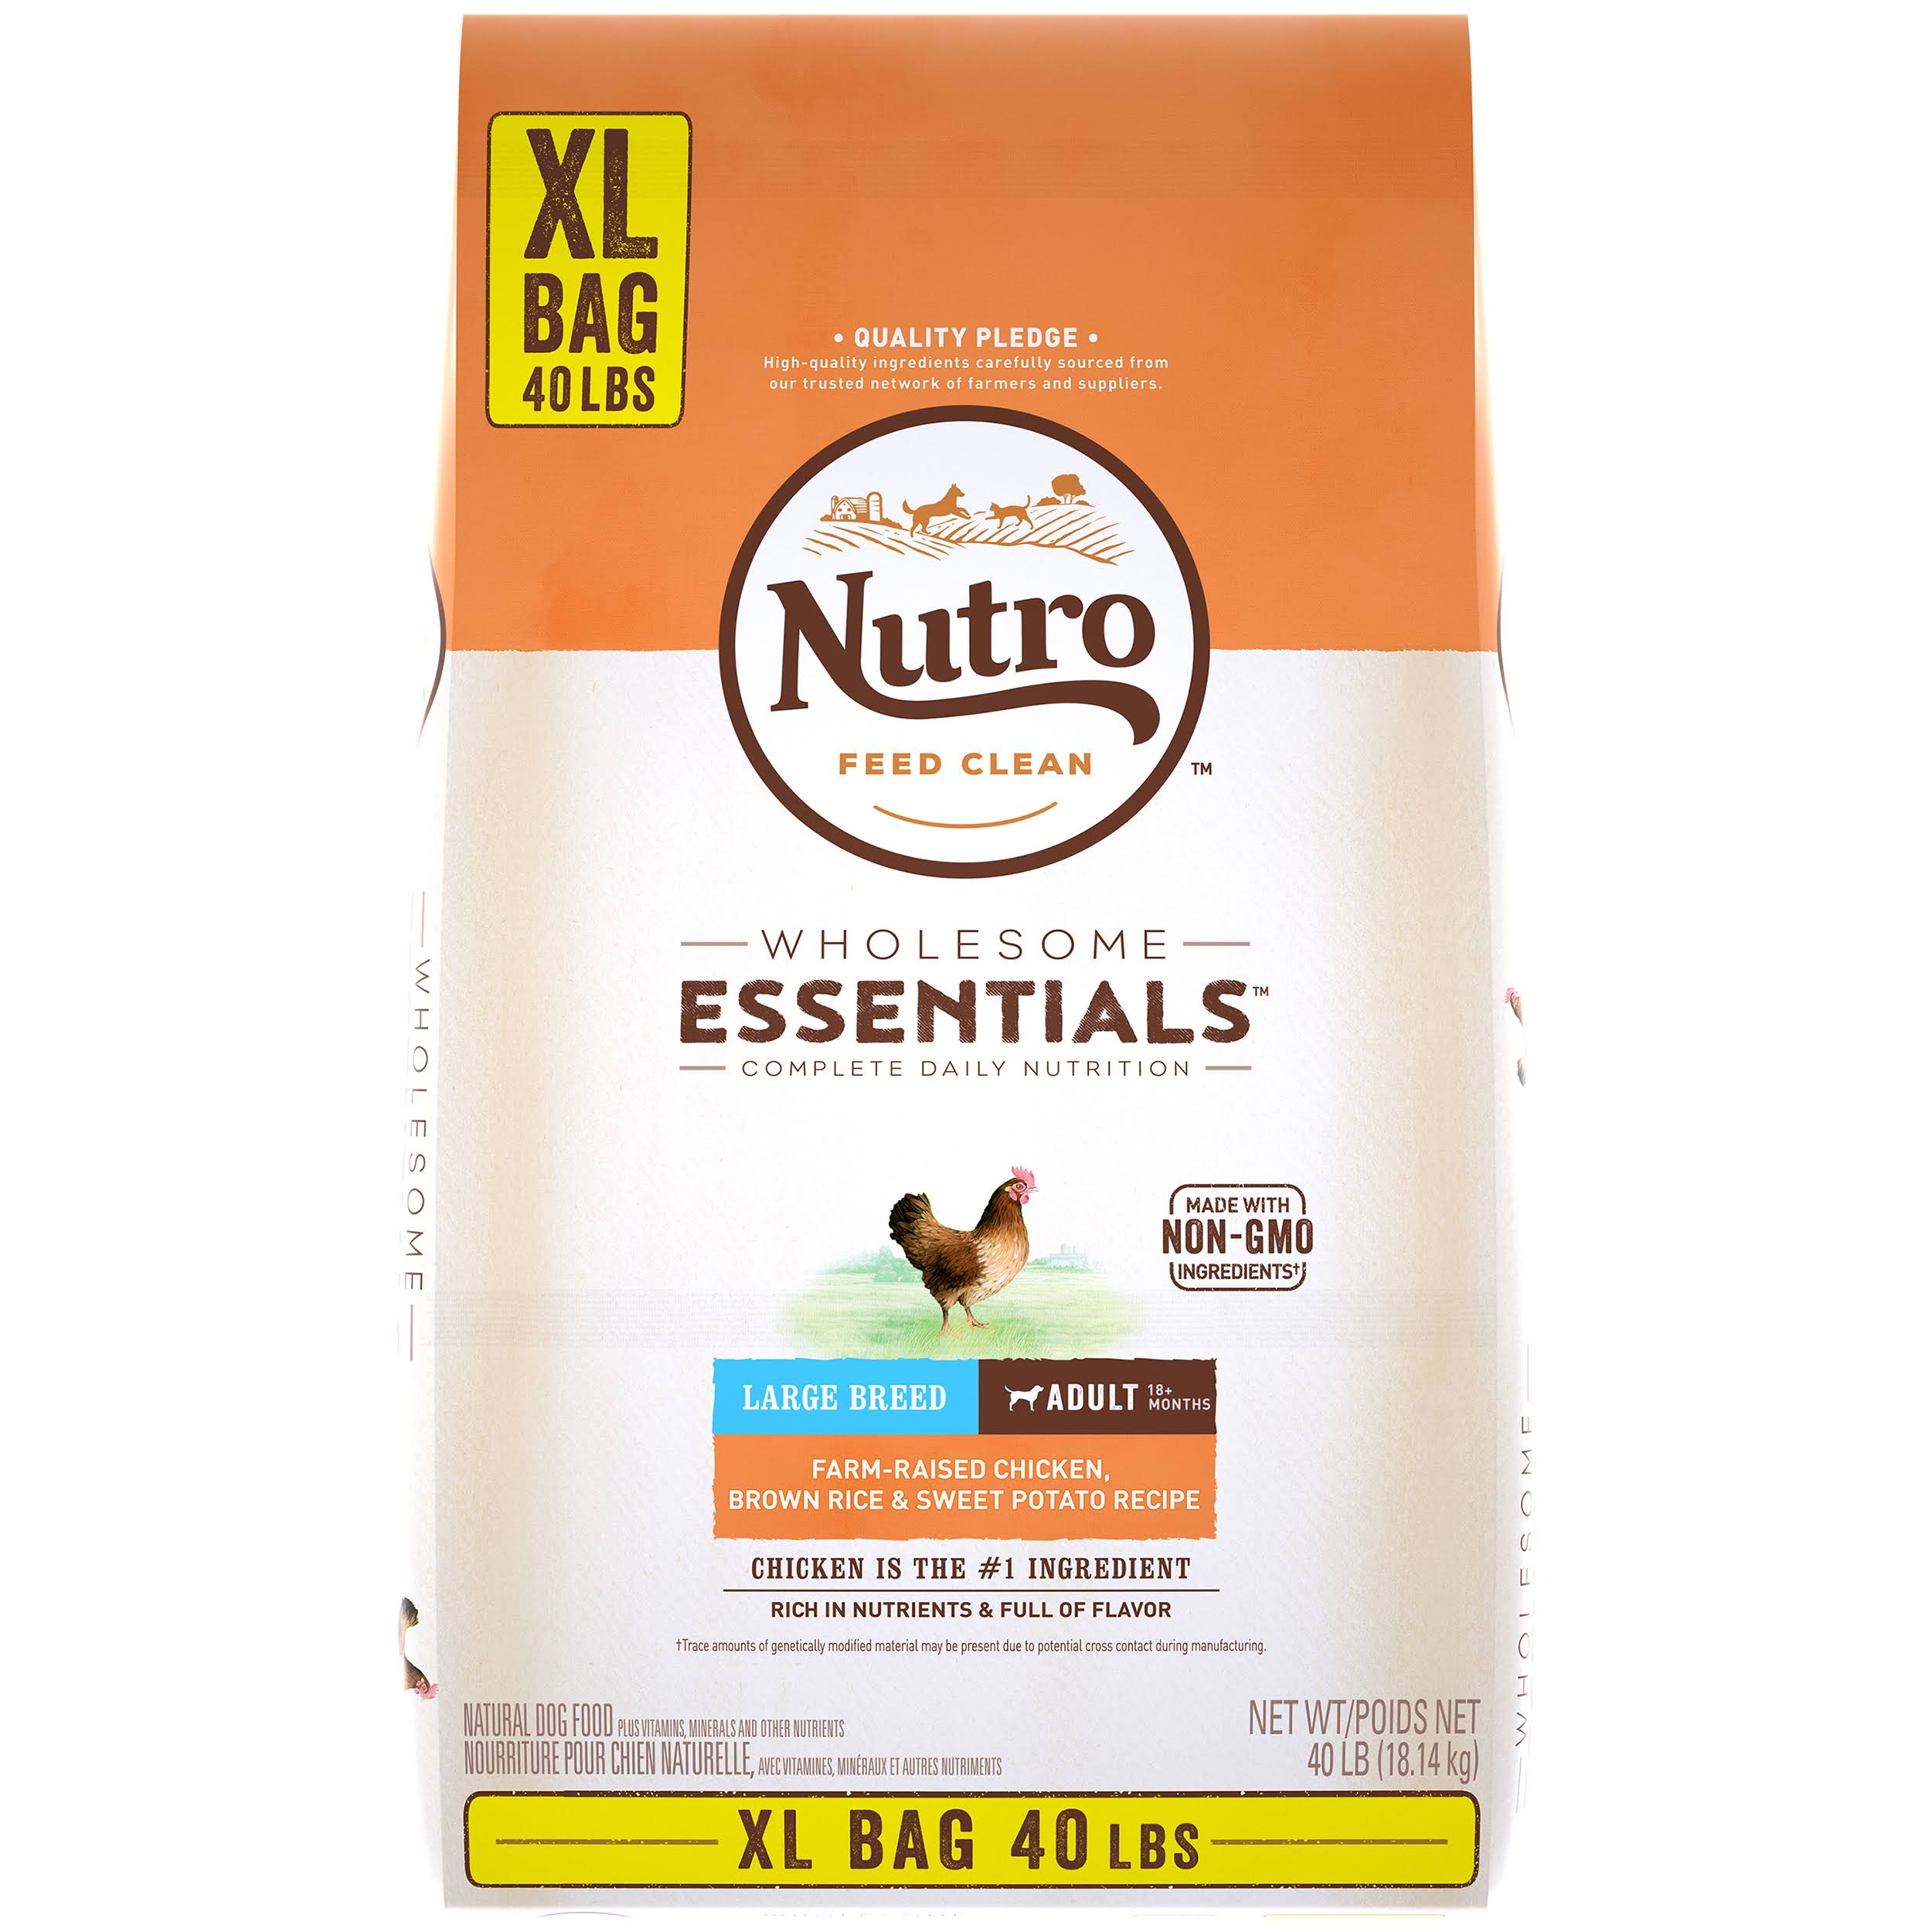 Nutro Wholesome Essentials Farm-Raised Chicken, Brown Rice & Sweet Potato Recipe Large Breed Adult Dry Dog Food, 40 lbs.